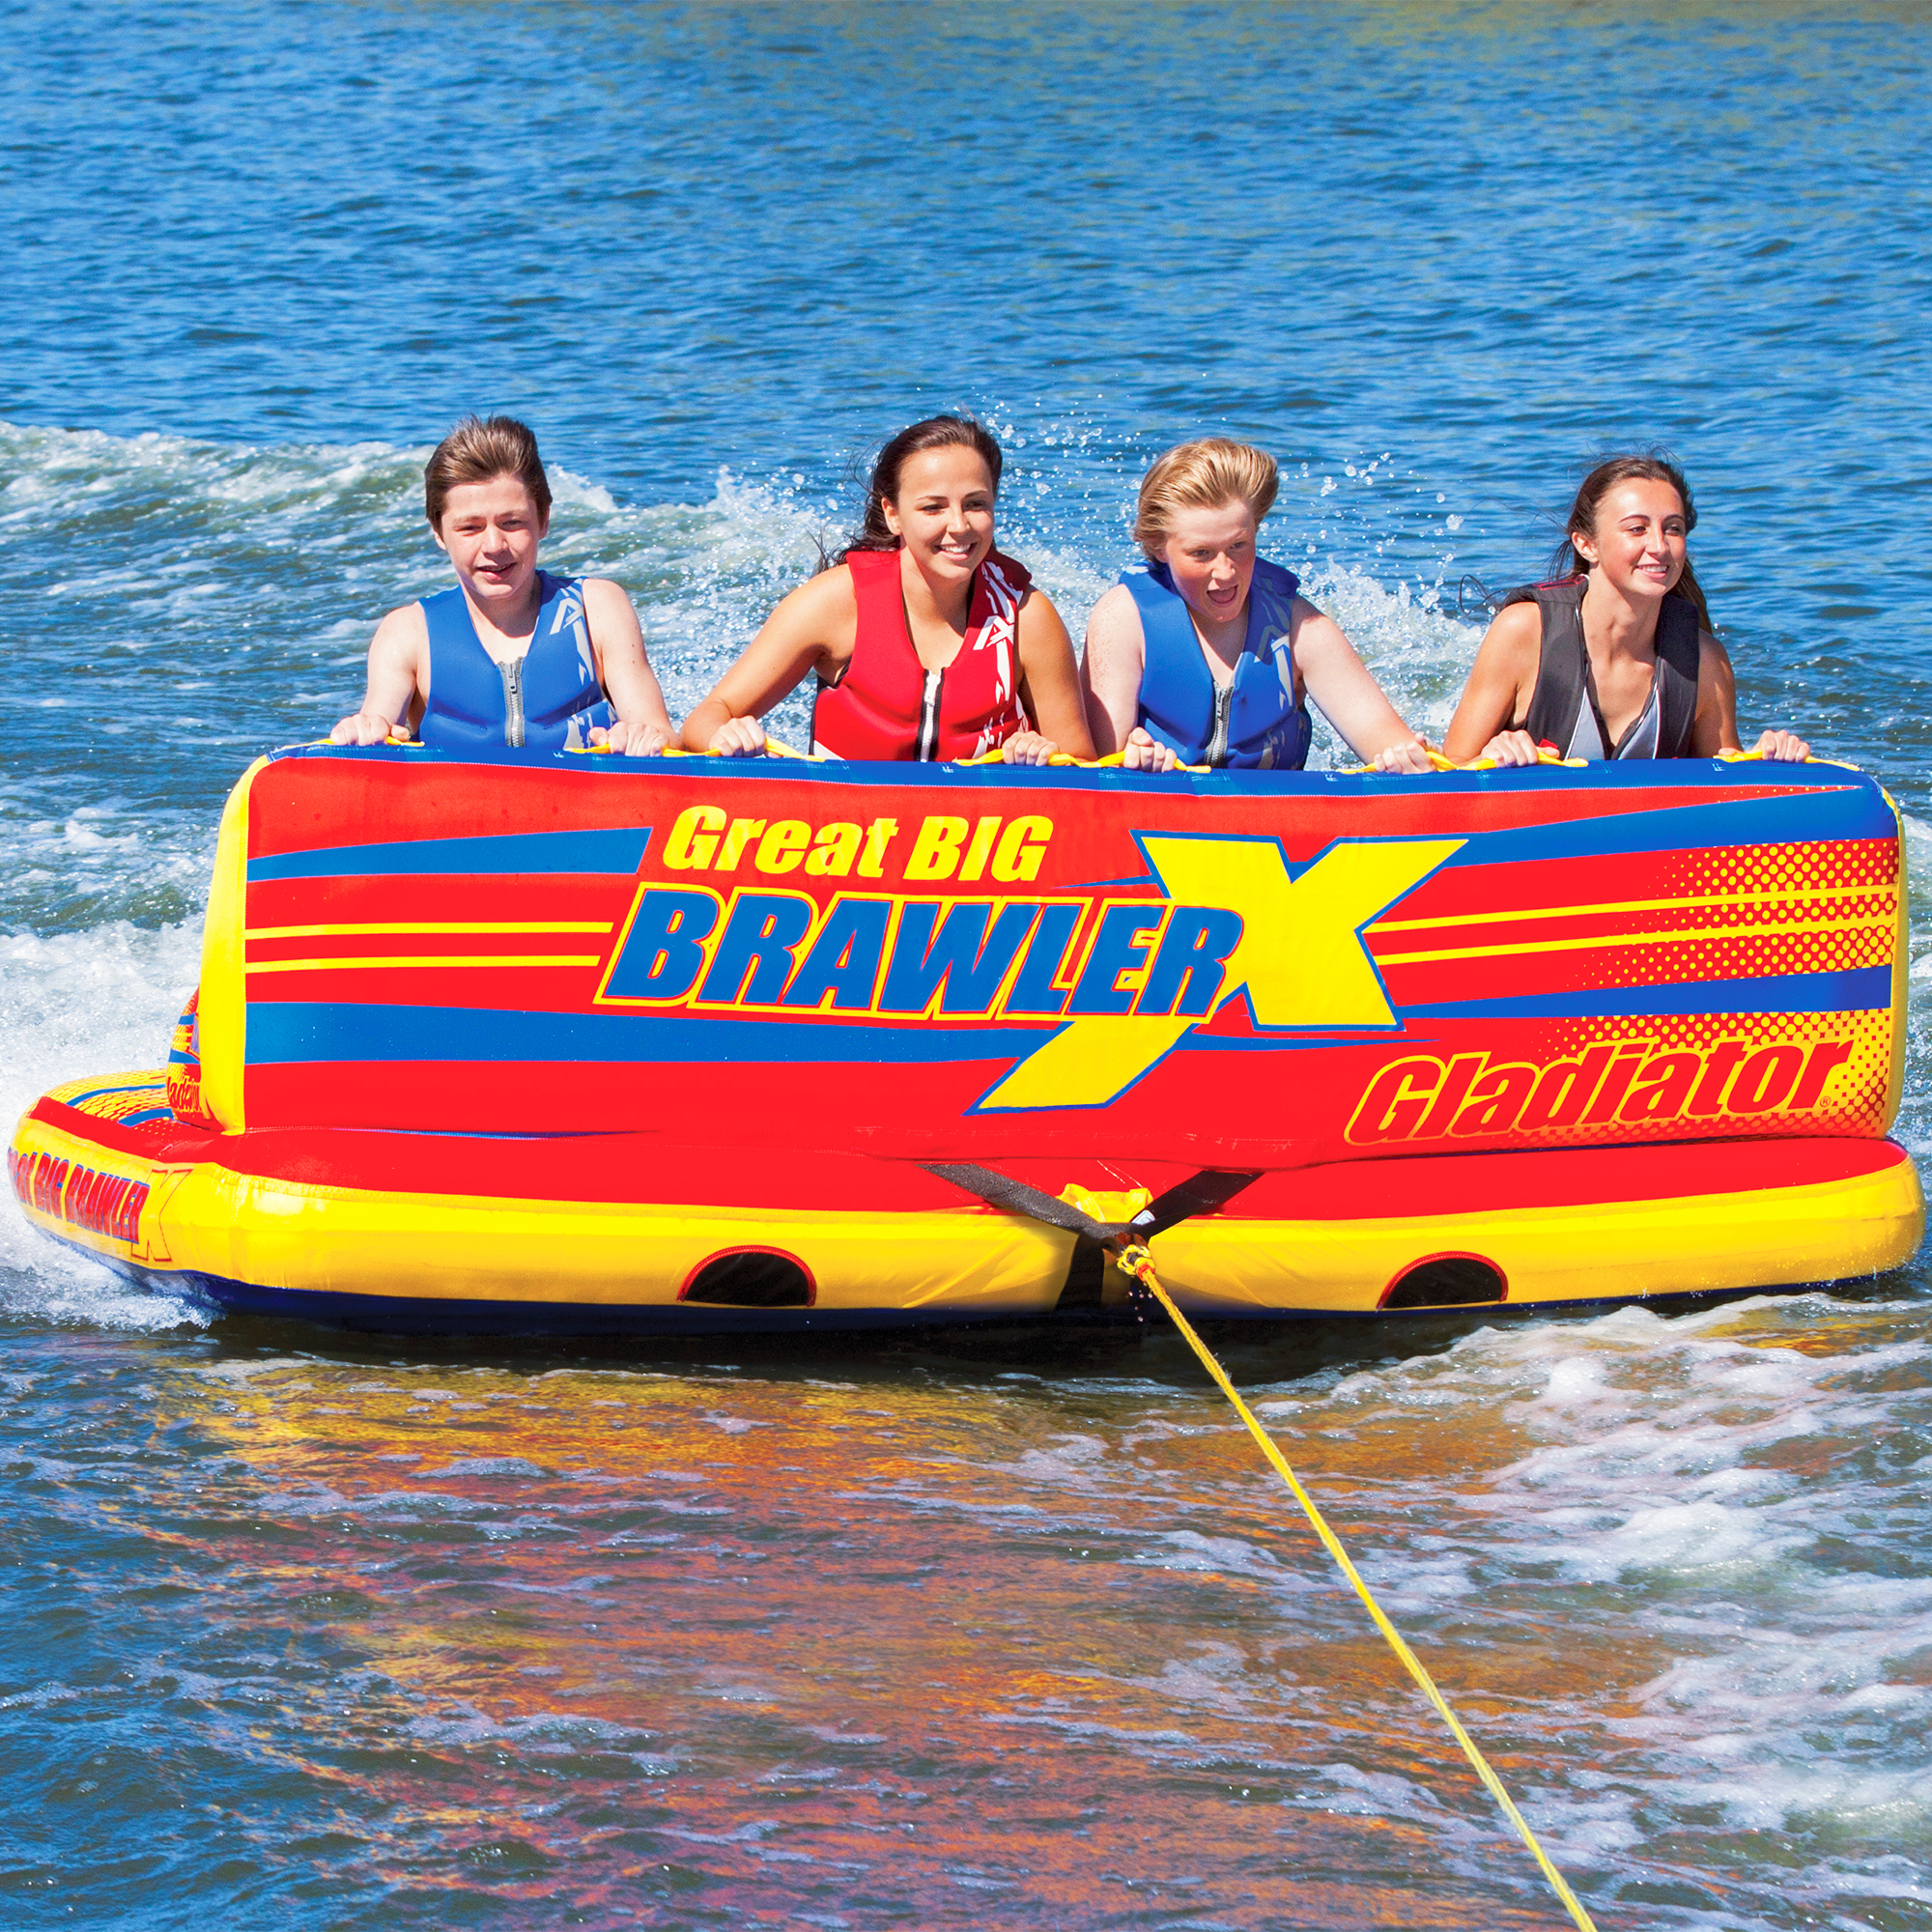 Gladiator Great Big Brawler X 4-Person Towable Tube Package